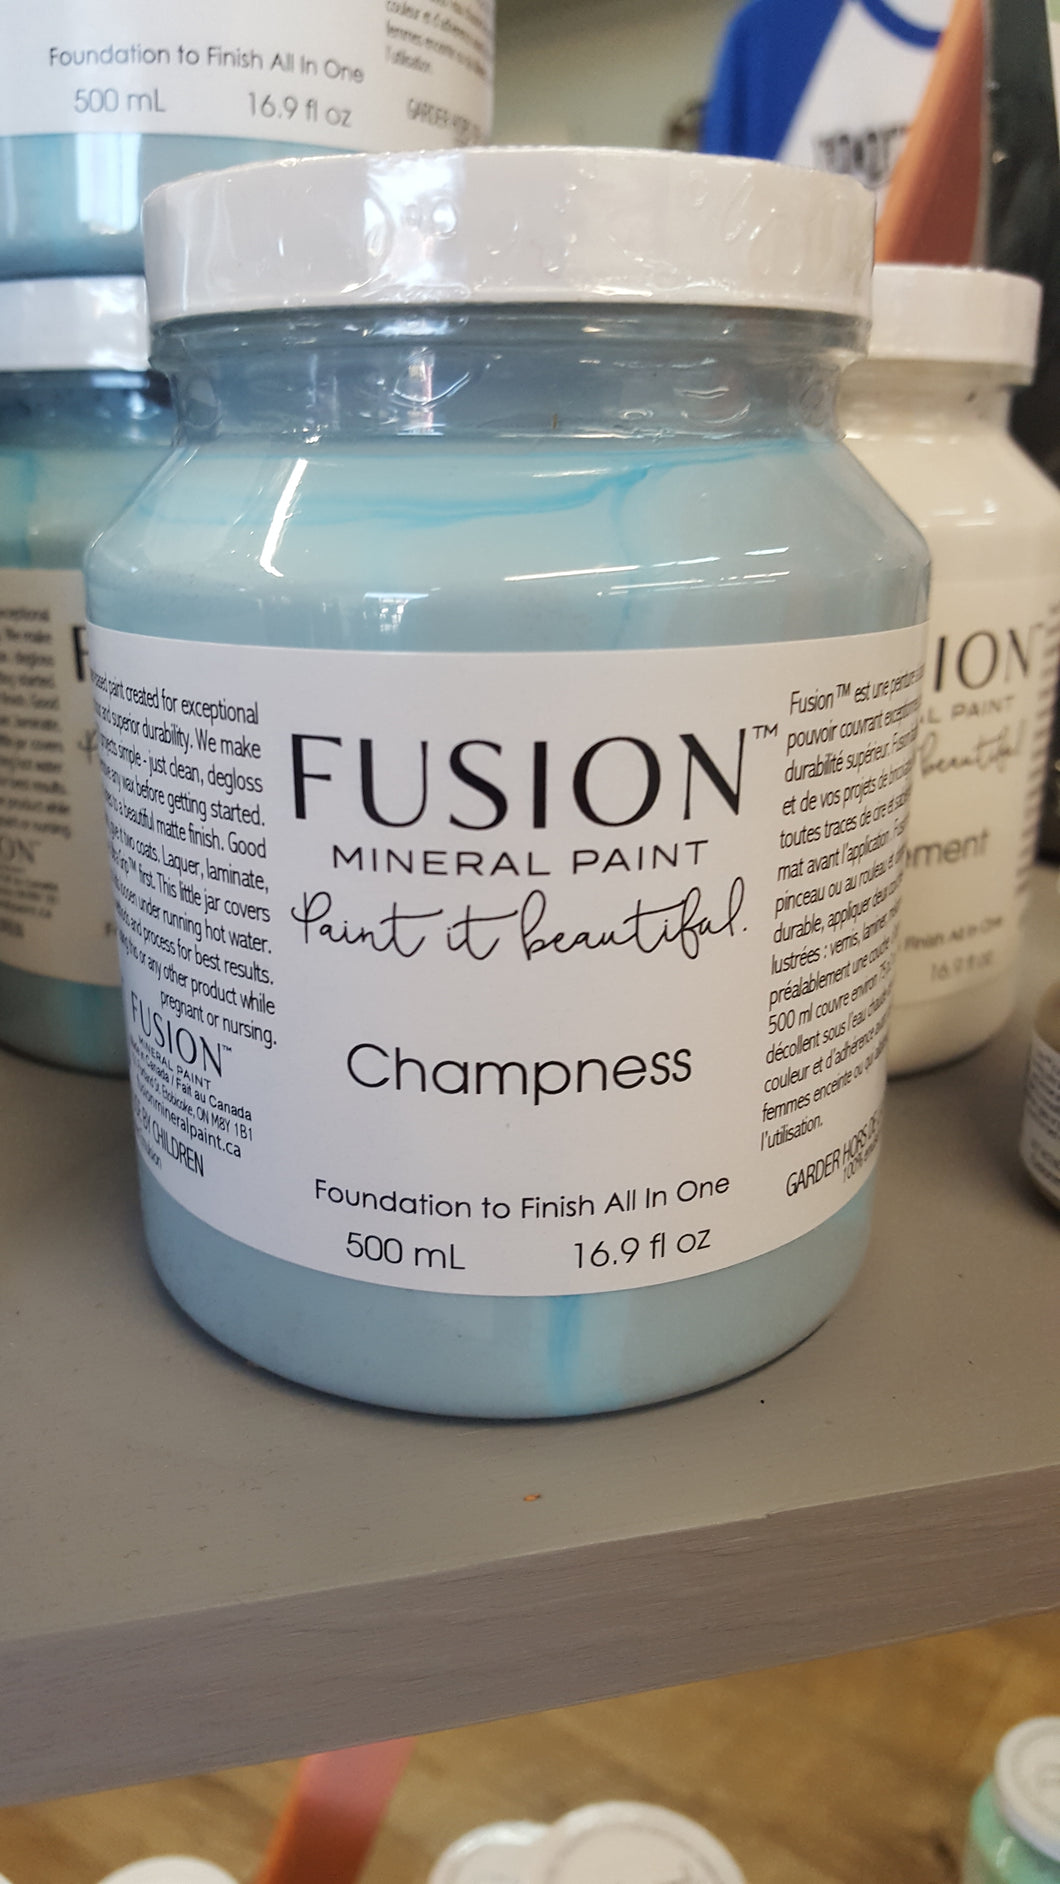 Tester- Champness